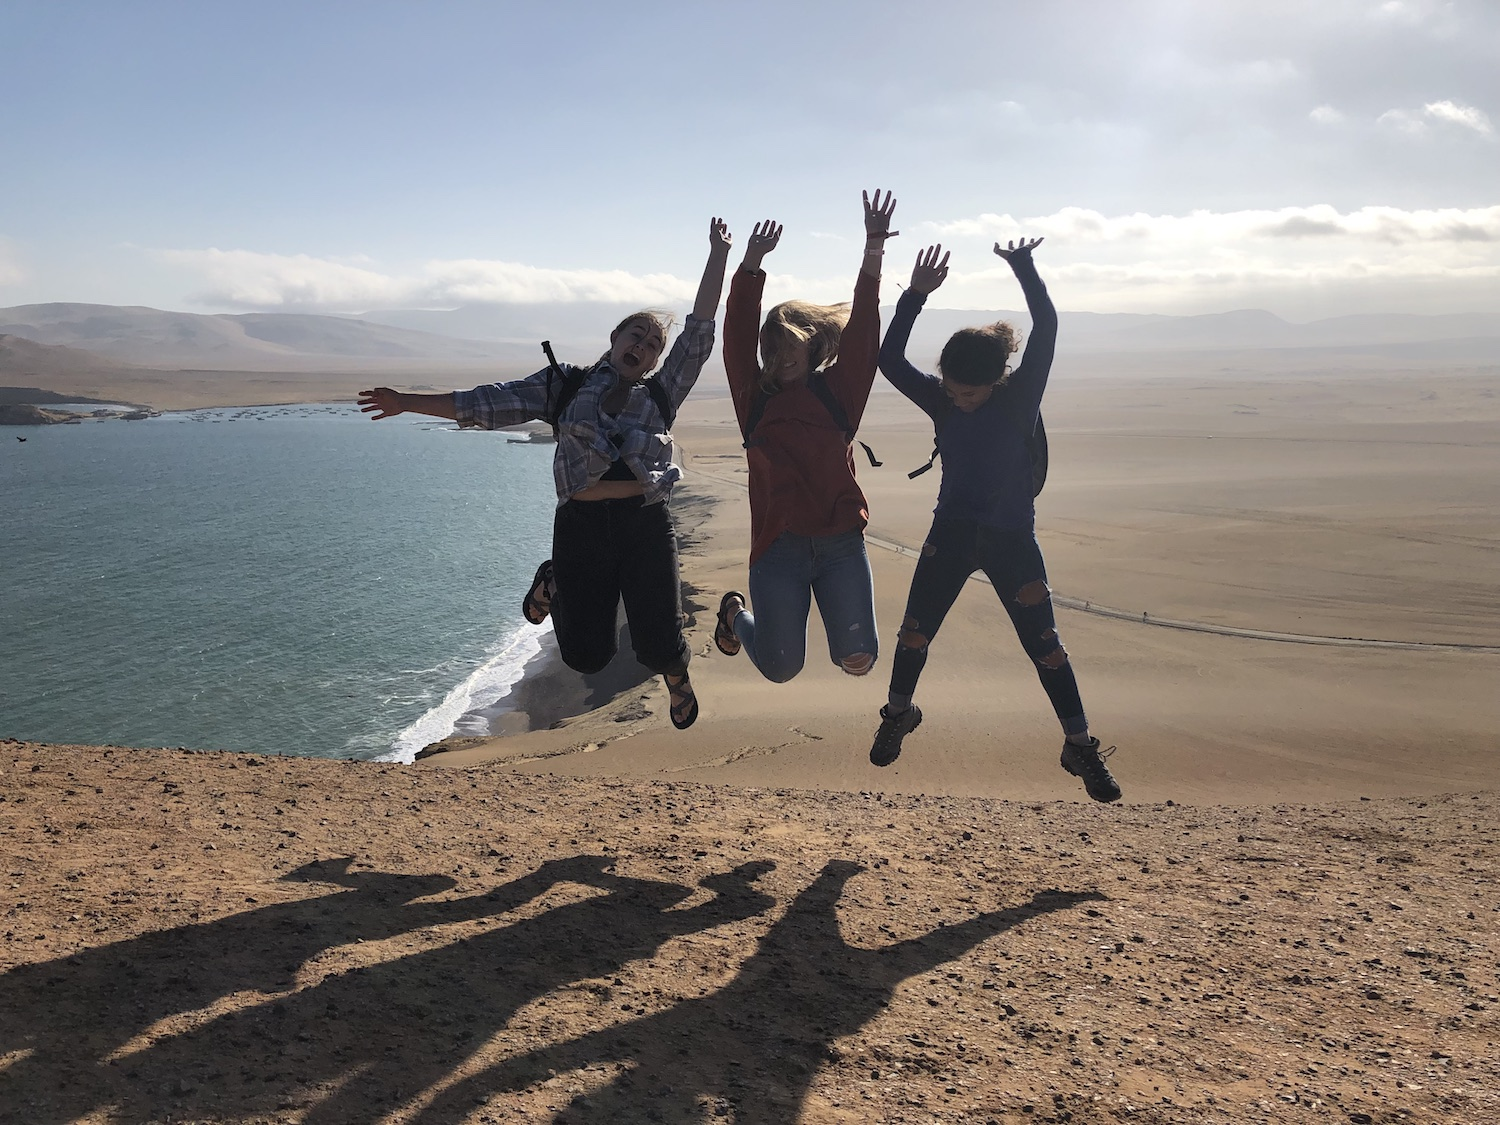 Zsofi, Devon and Brianna defying gravity above Playa Roja in Paracas, Peru, June 2019.